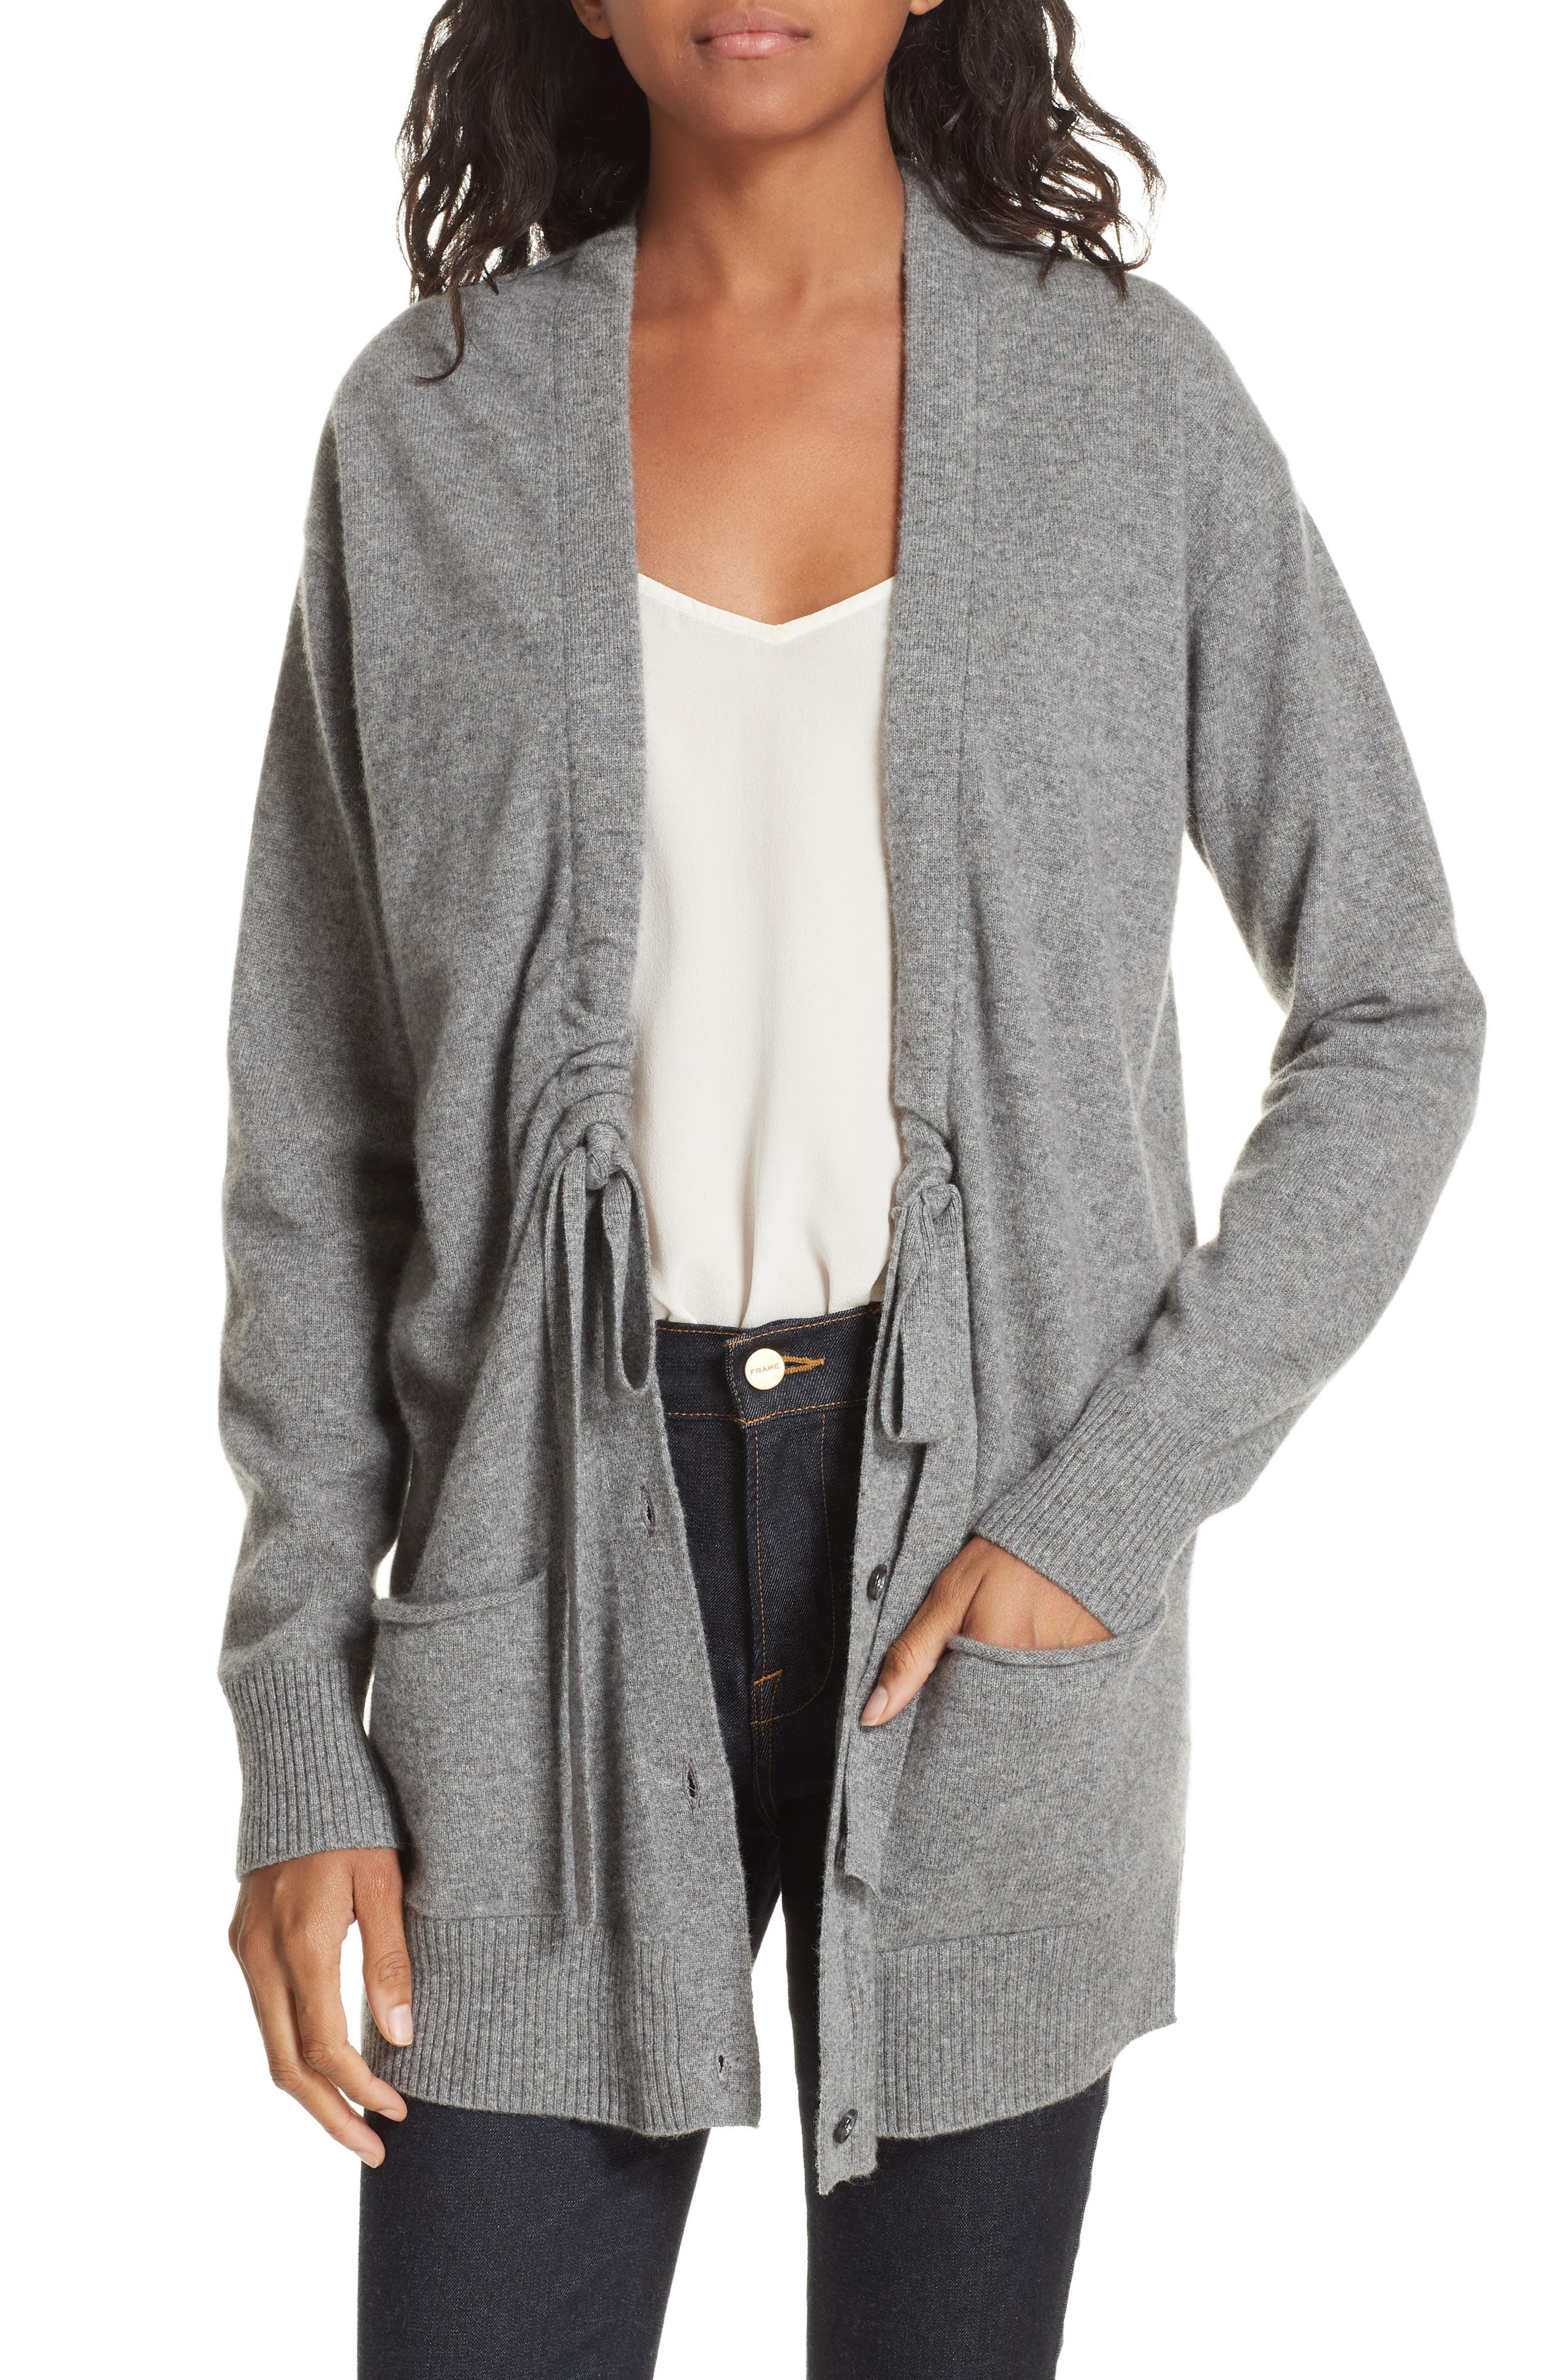 Bray Cashmere Cardigan,                         Main,                         color, HEATHER GREY